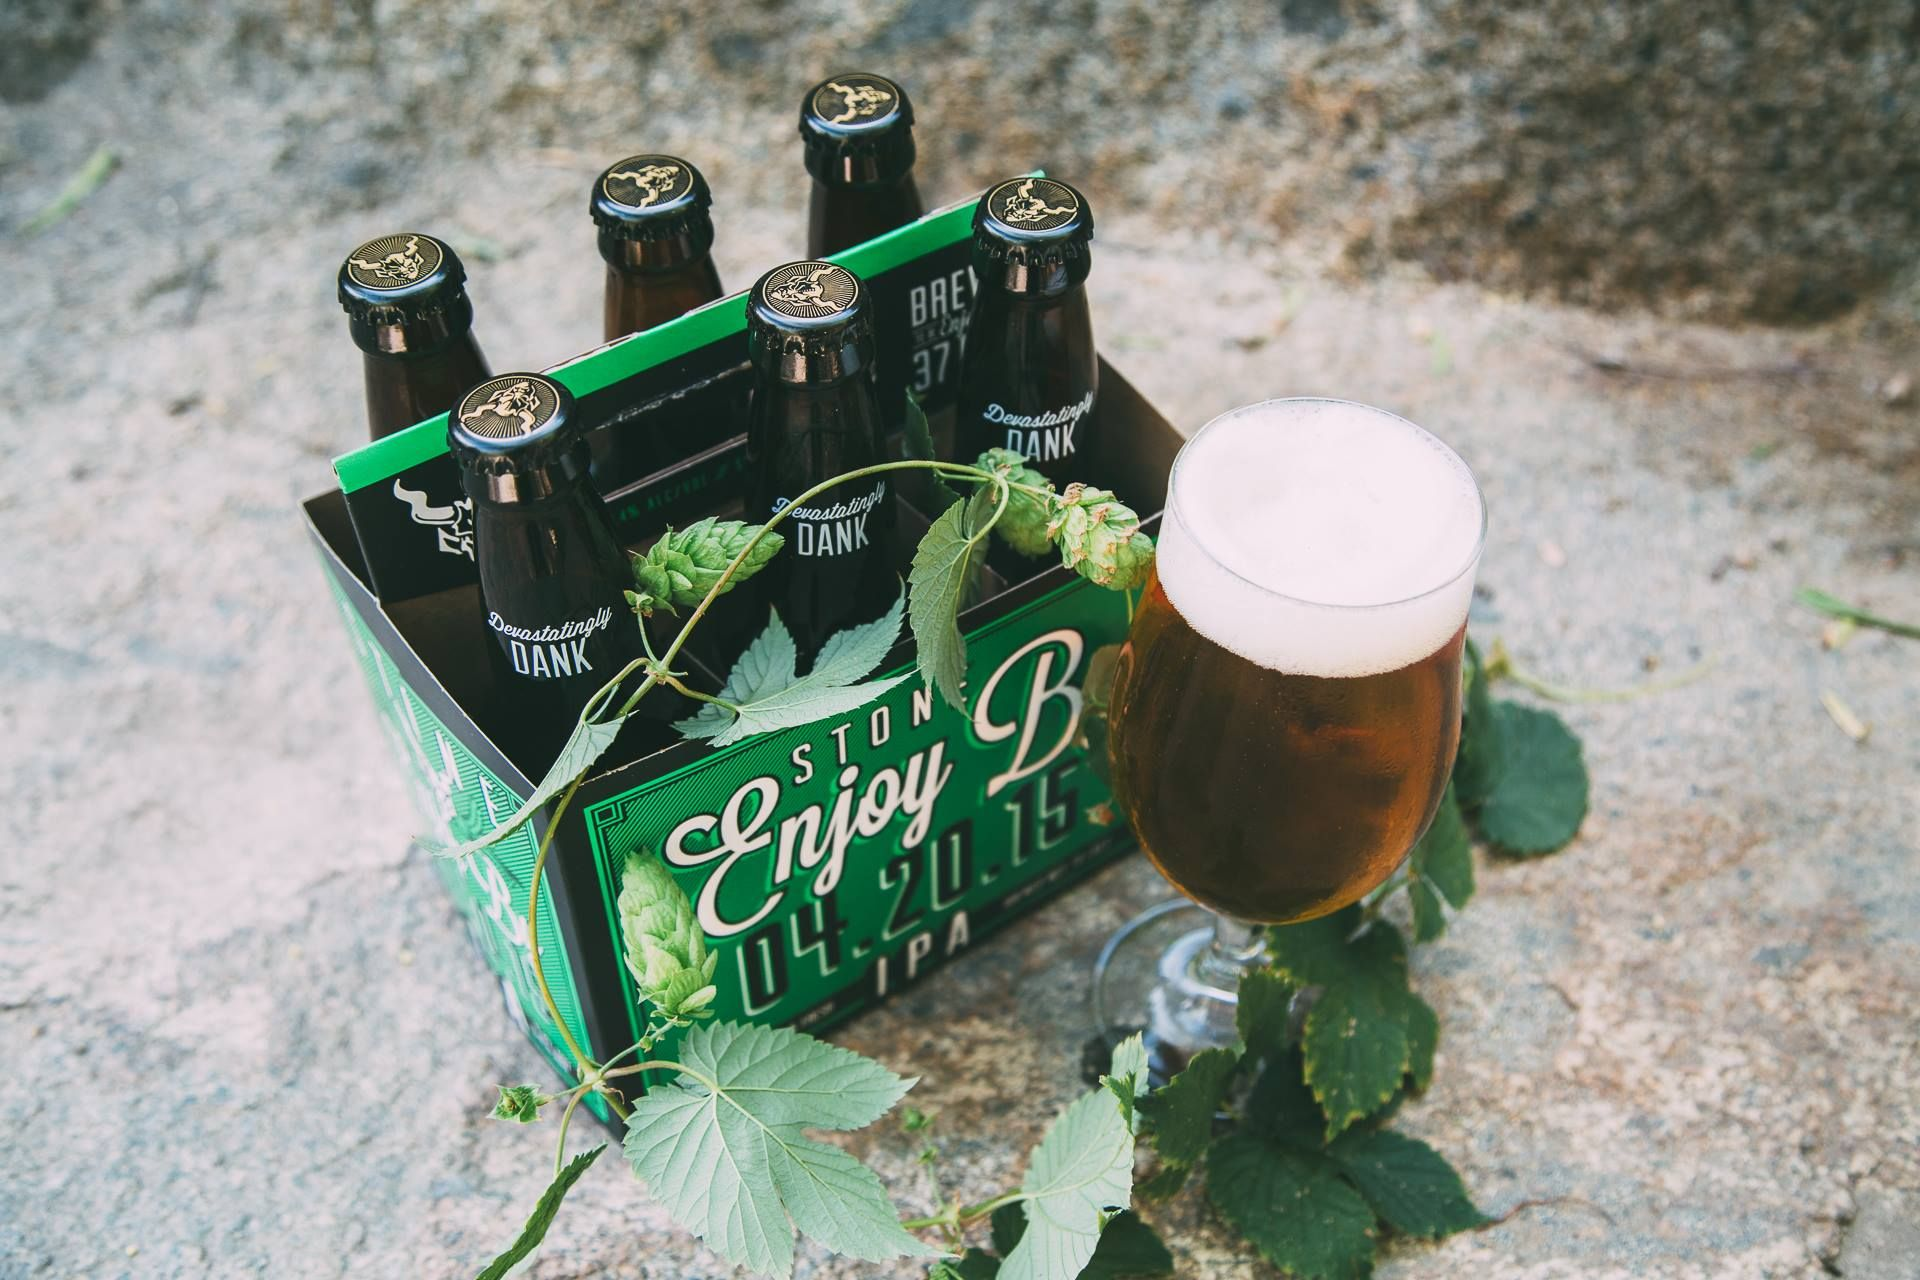 Question: What's better than a bottle of STONE #ENJOYBY 04.20.15 #IPA? Answer: Six bottles of Stone Enjoy By 04.20.15 IPA. This lesson on easy math and simple pleasures brought to you by your fellow hop-heads at Stone.